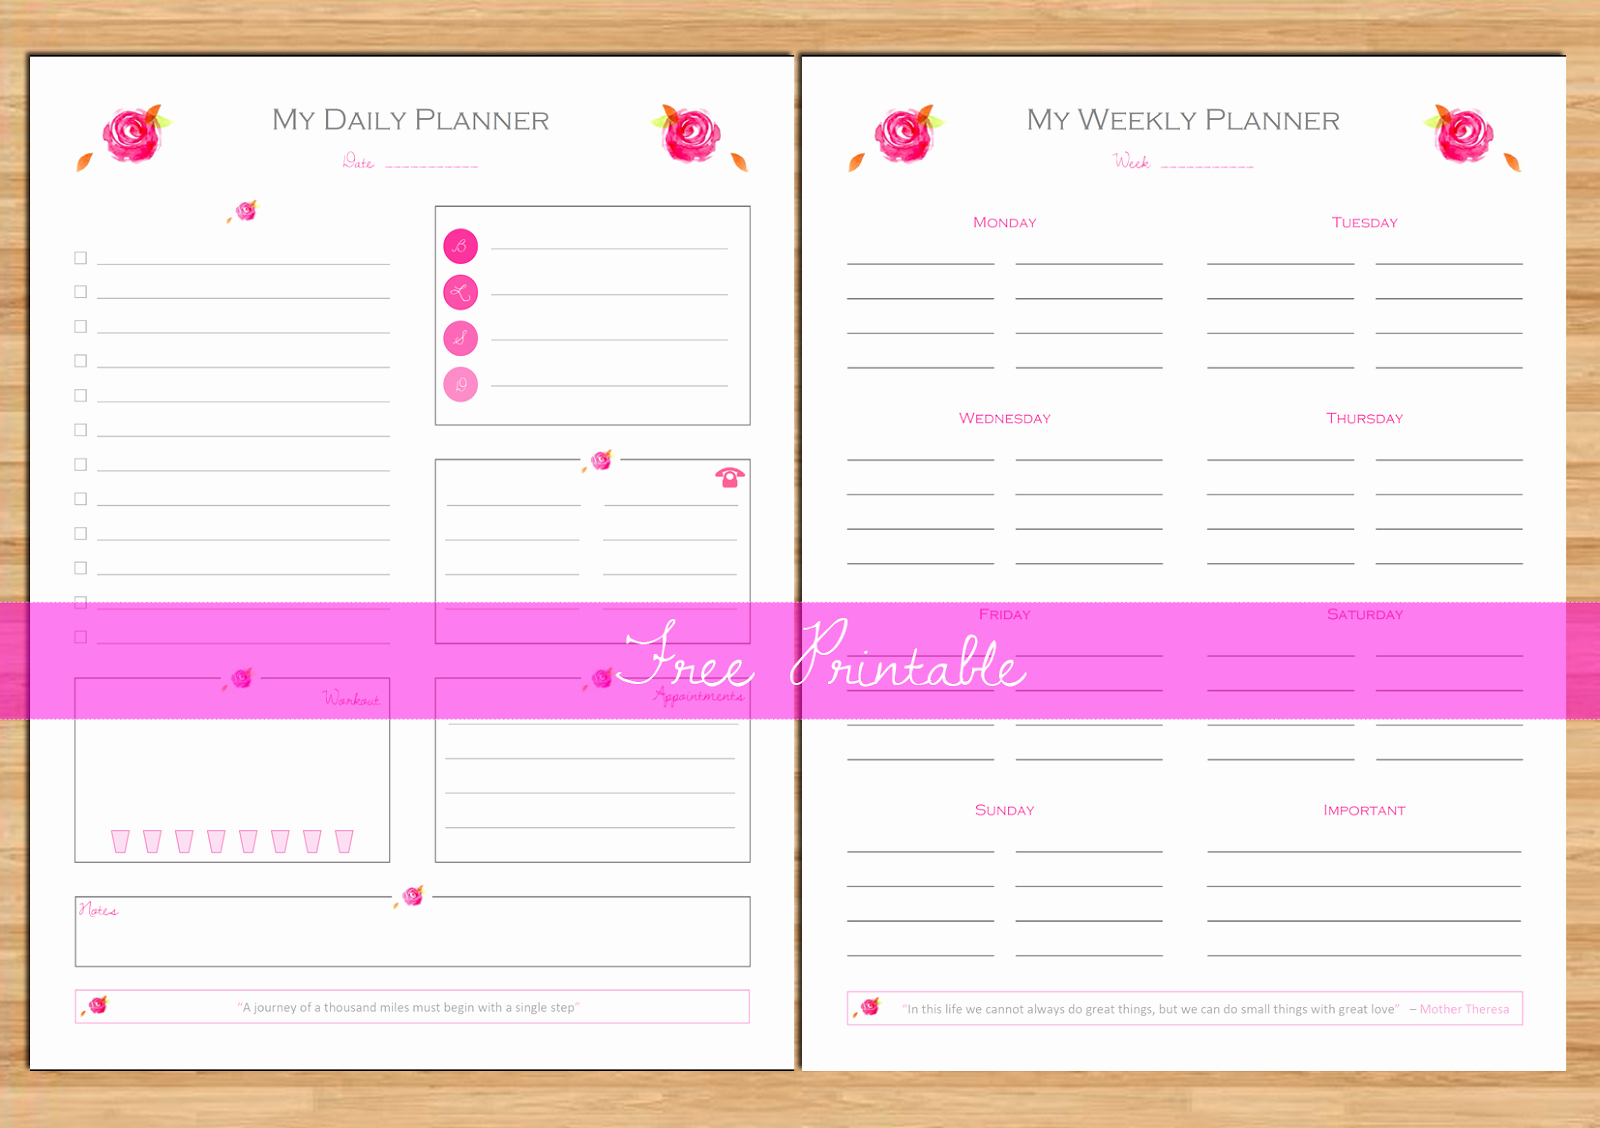 Free Daily Planner Printables Inspirational Made In Craftadise